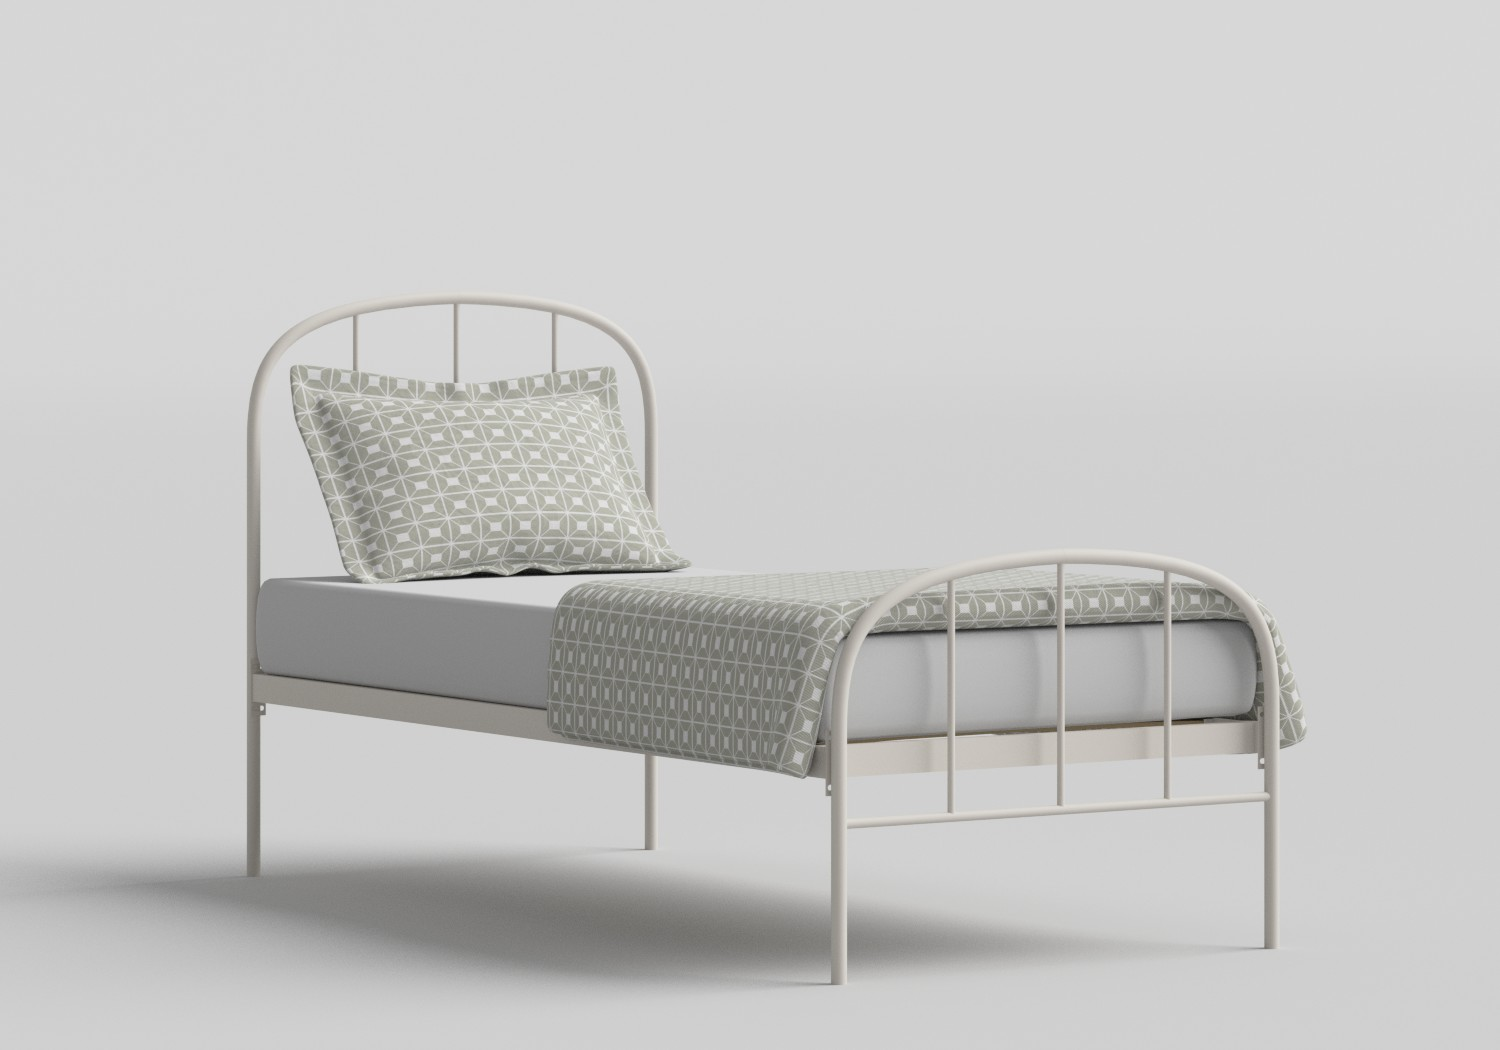 Waldo Single Iron/Metal Bed in Glossy Ivory